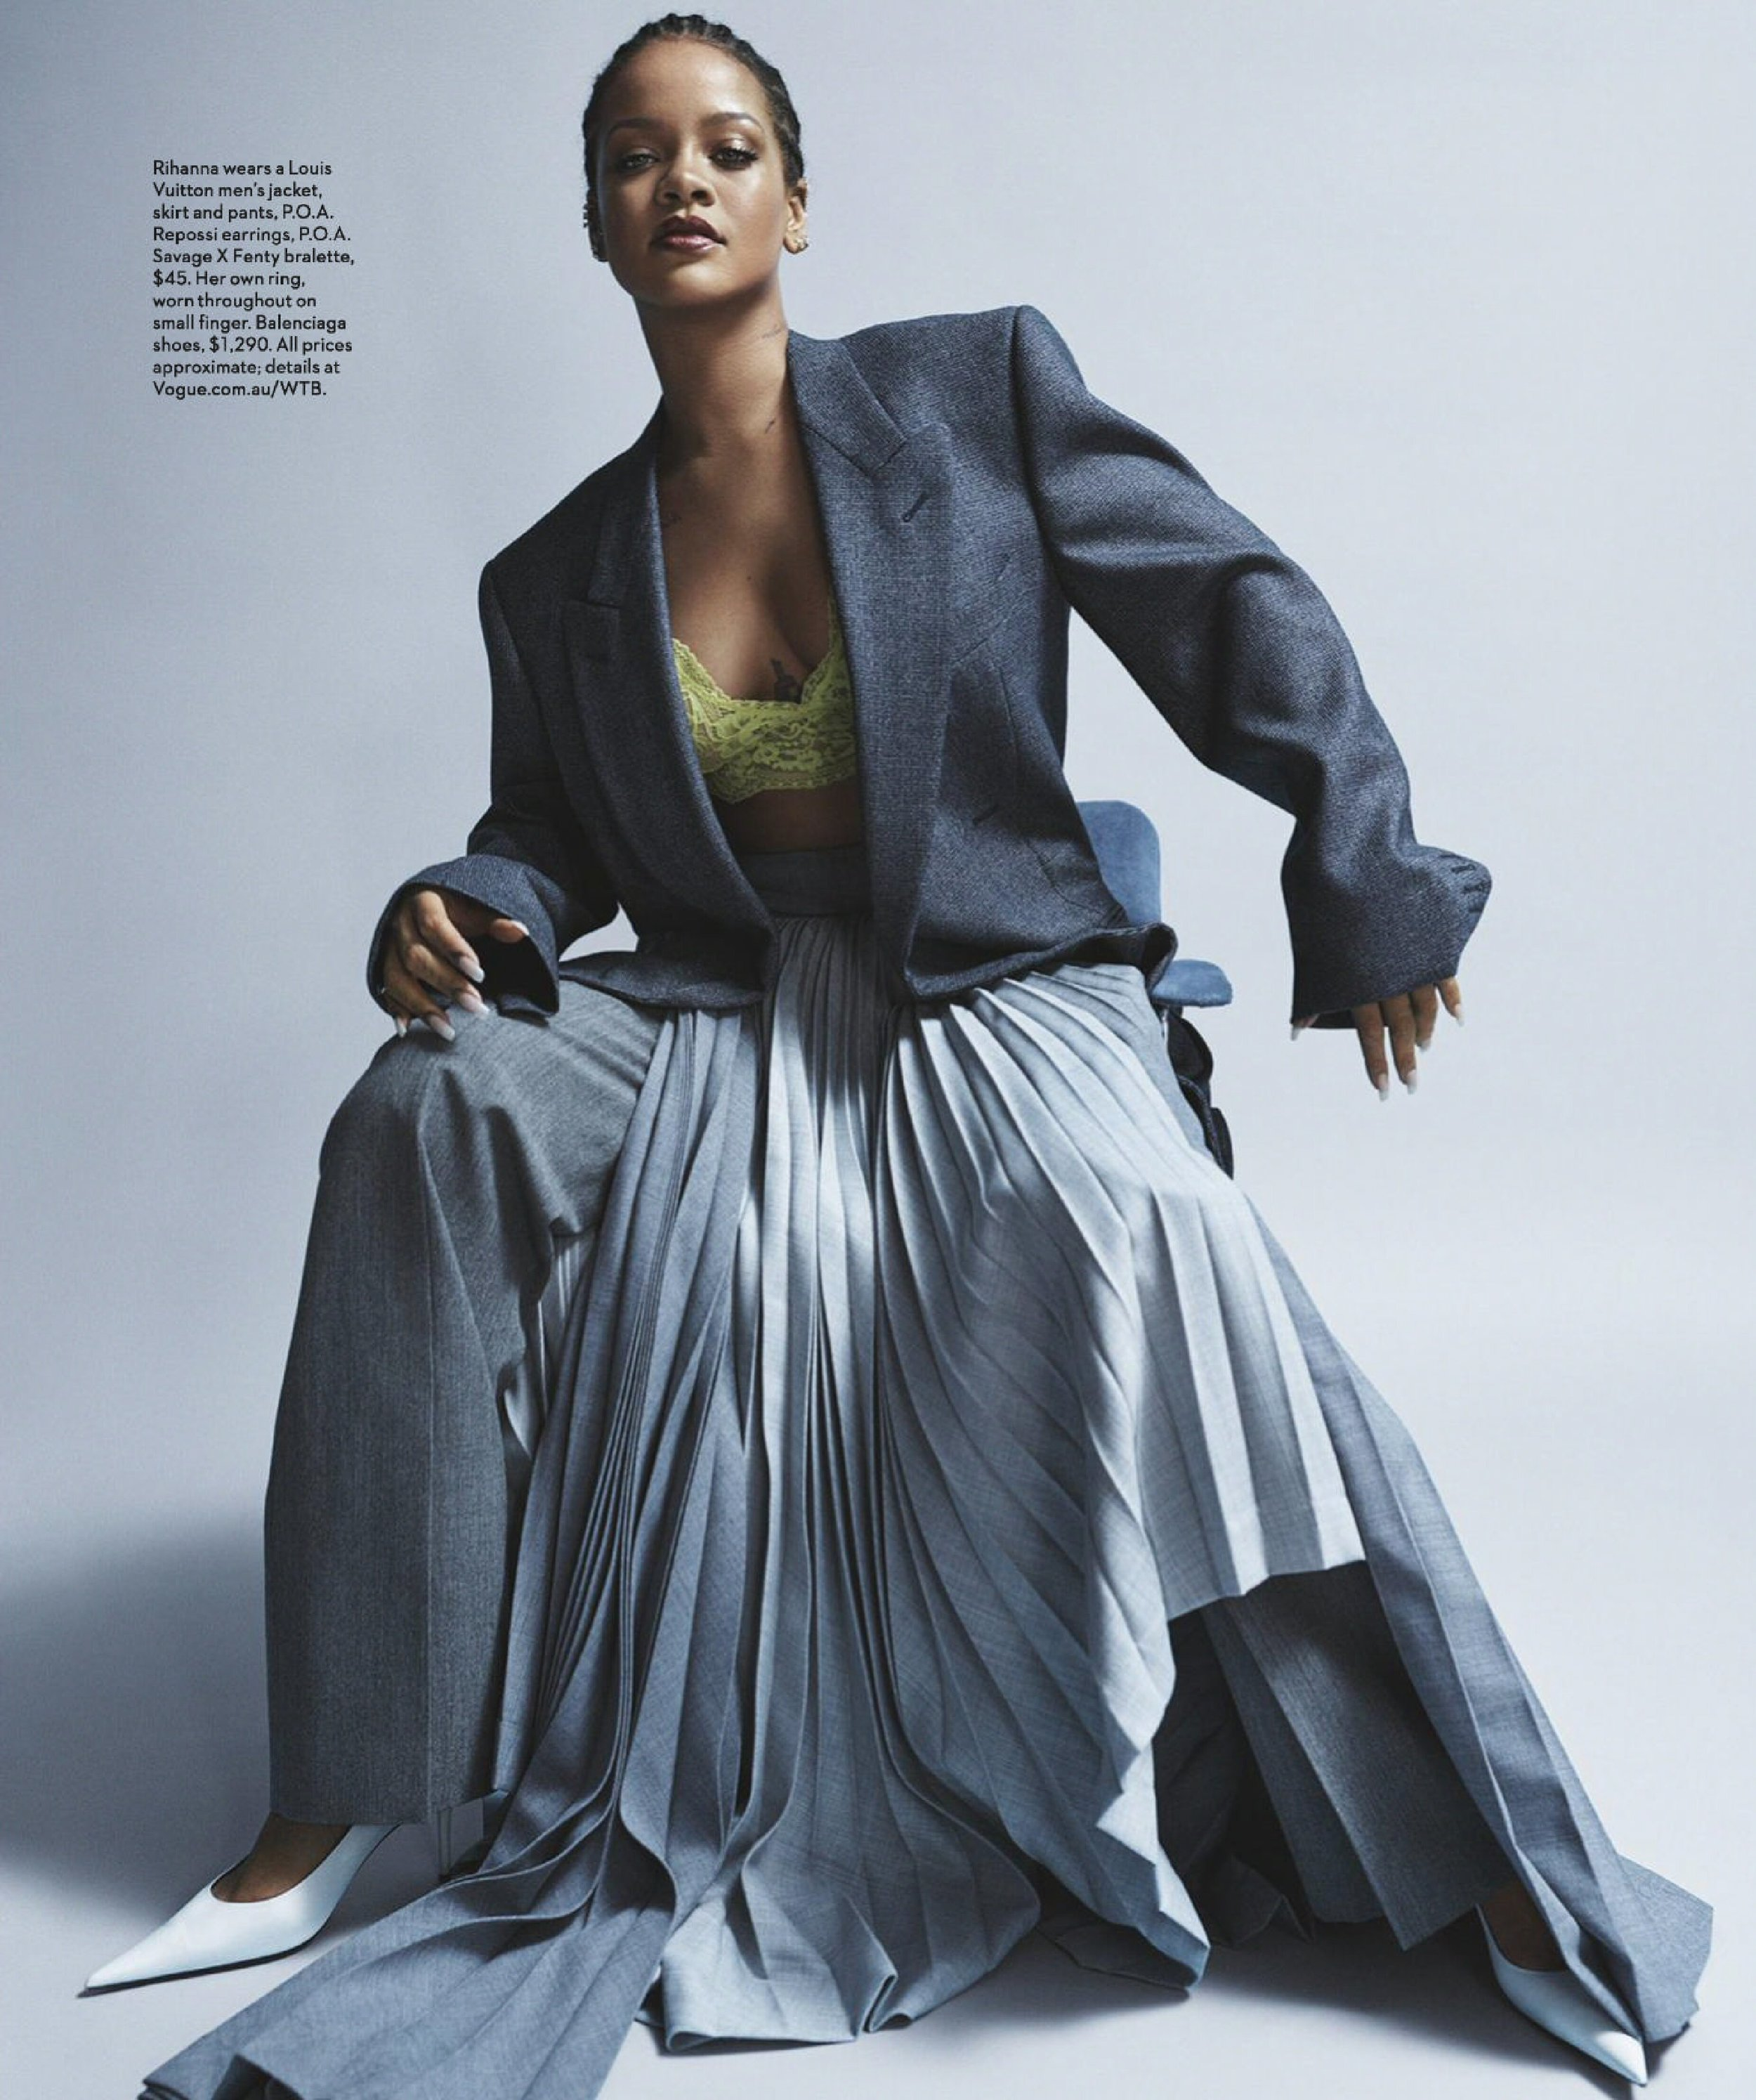 Rihanna-Josh-Olins-Vogue-Australia-May-2019- (2).jpg